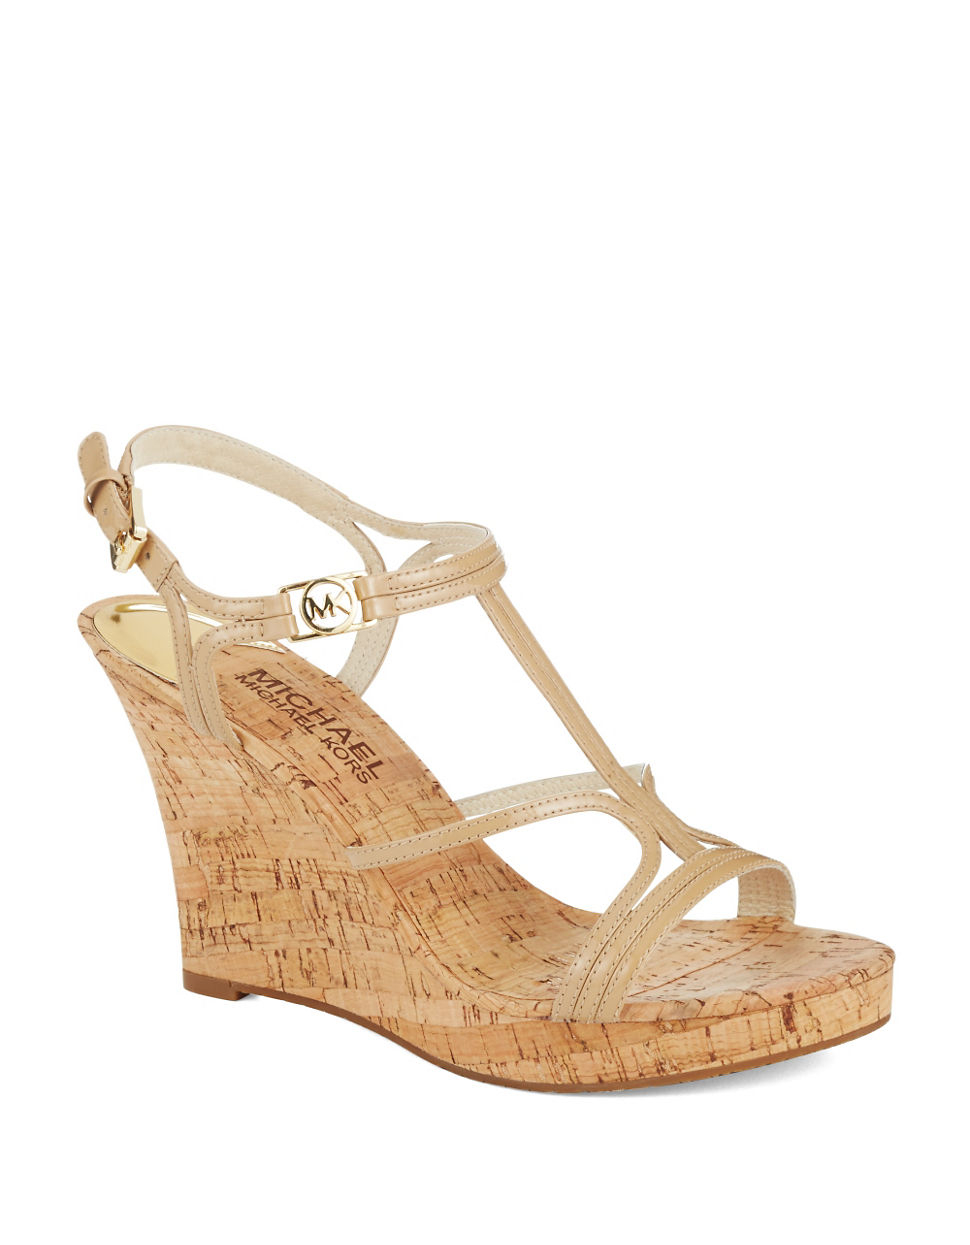 4d9a8eaa4a MICHAEL Michael Kors Cicely Cork Wedges in Natural - Lyst